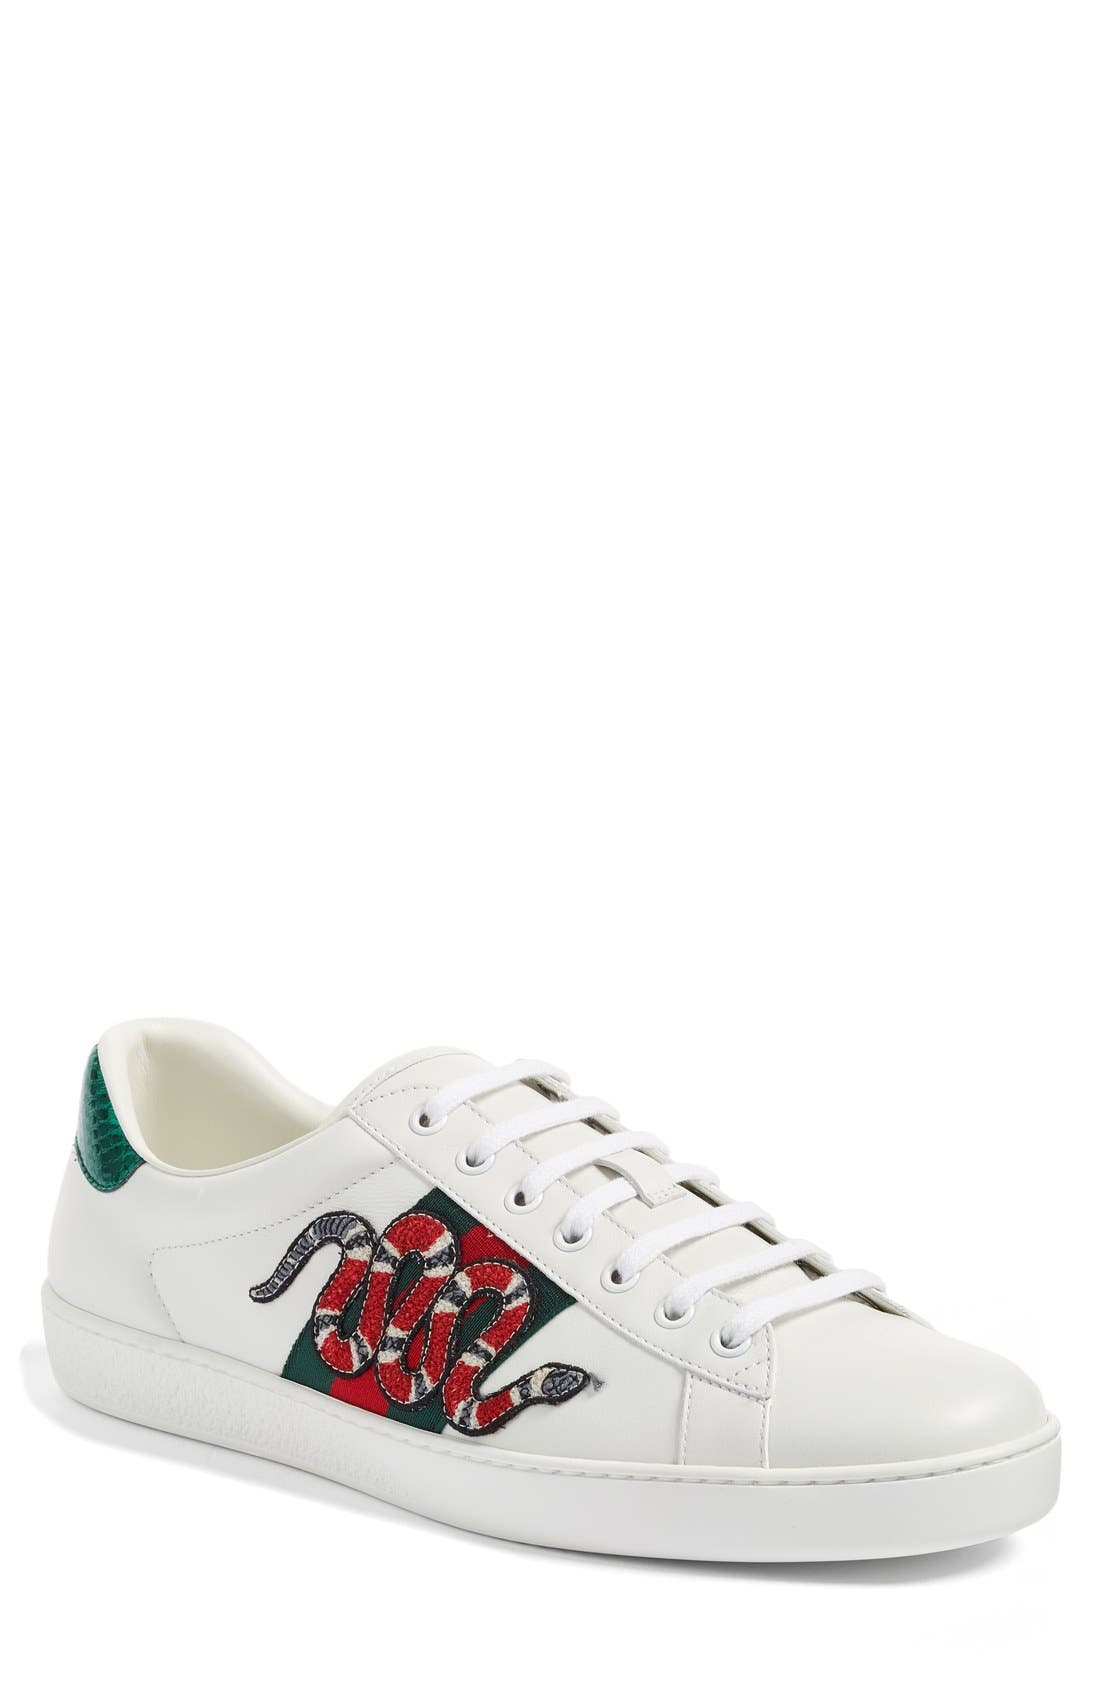 Main Image - Gucci 'New Ace' Sneaker (Men)